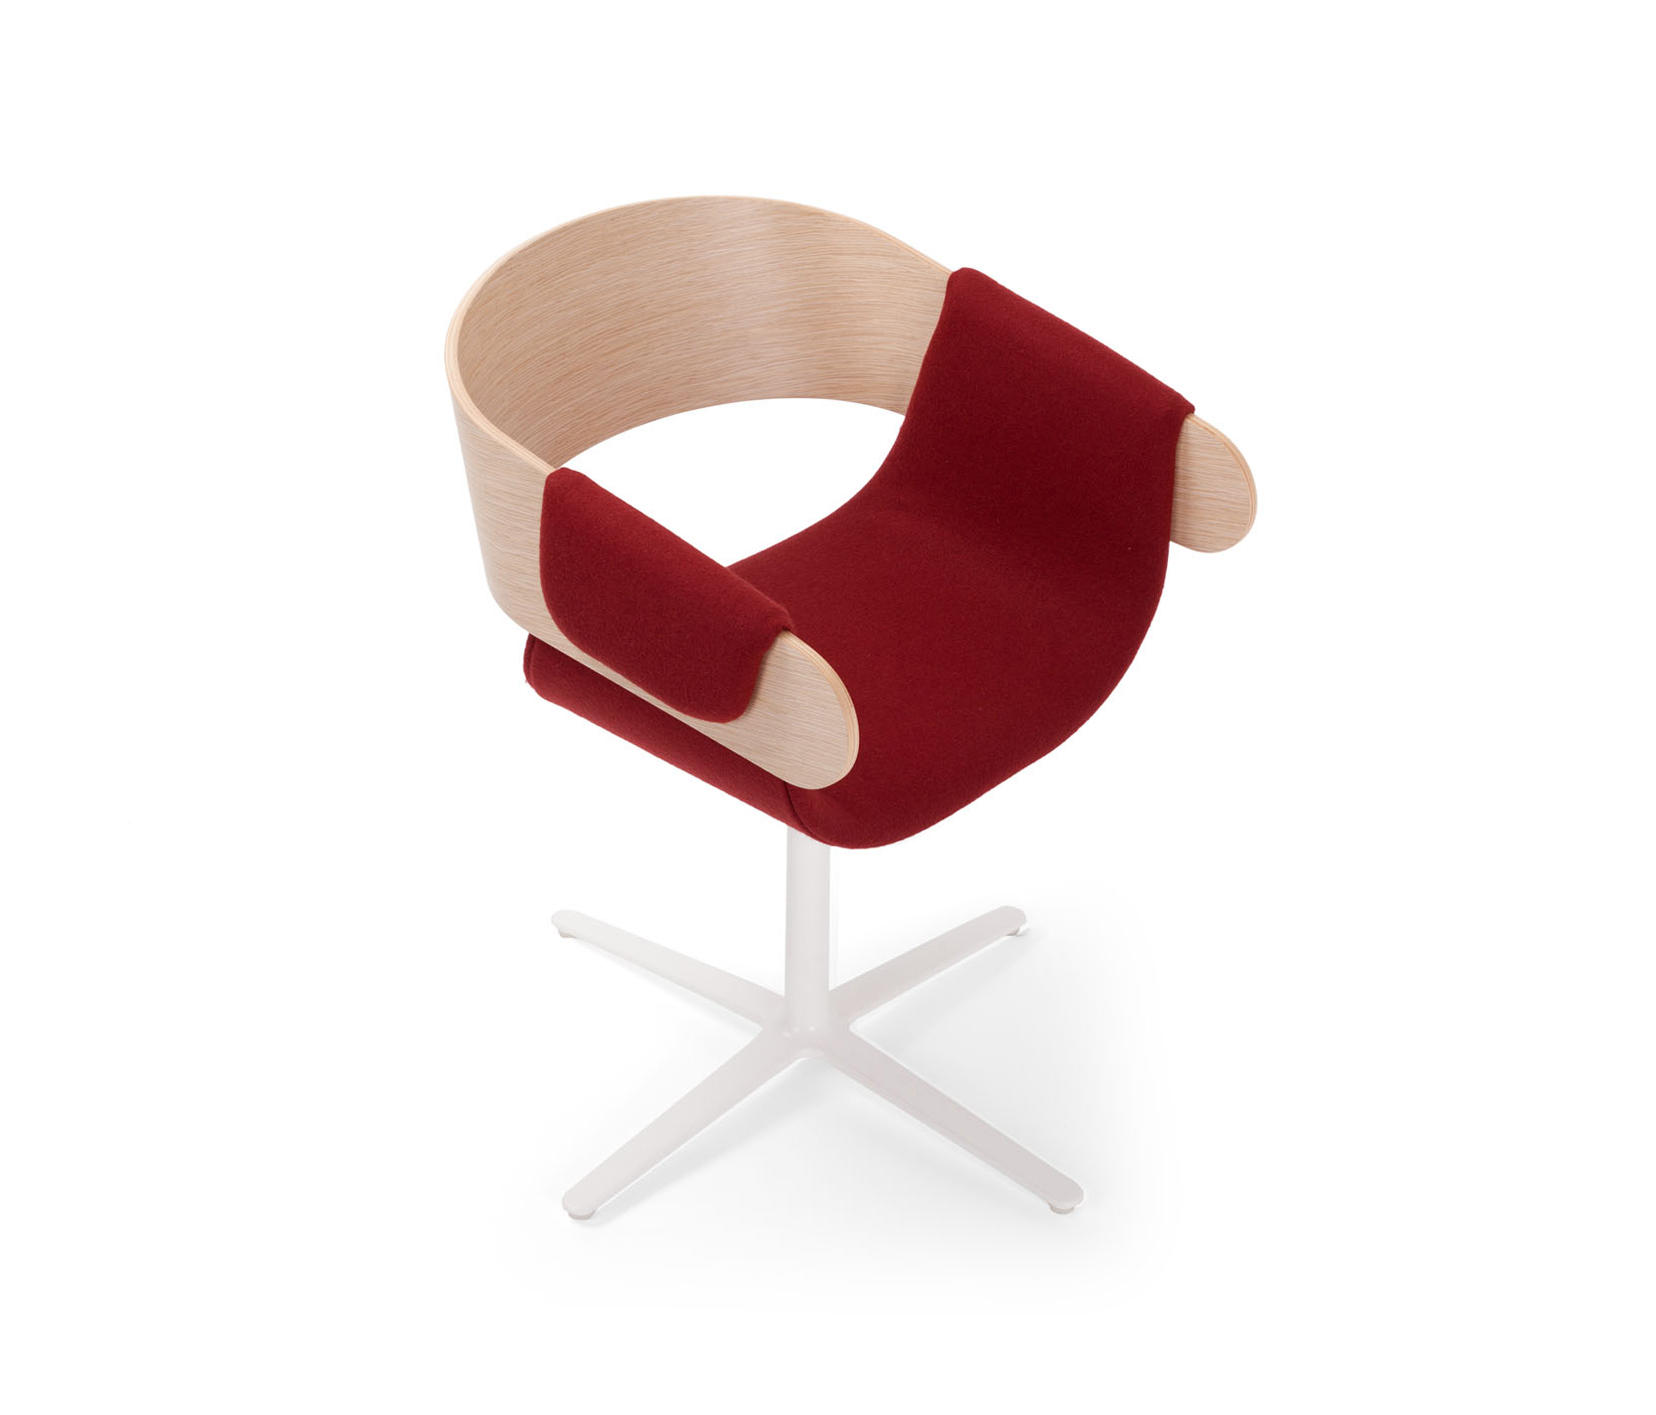 kay chairs from true design architonic